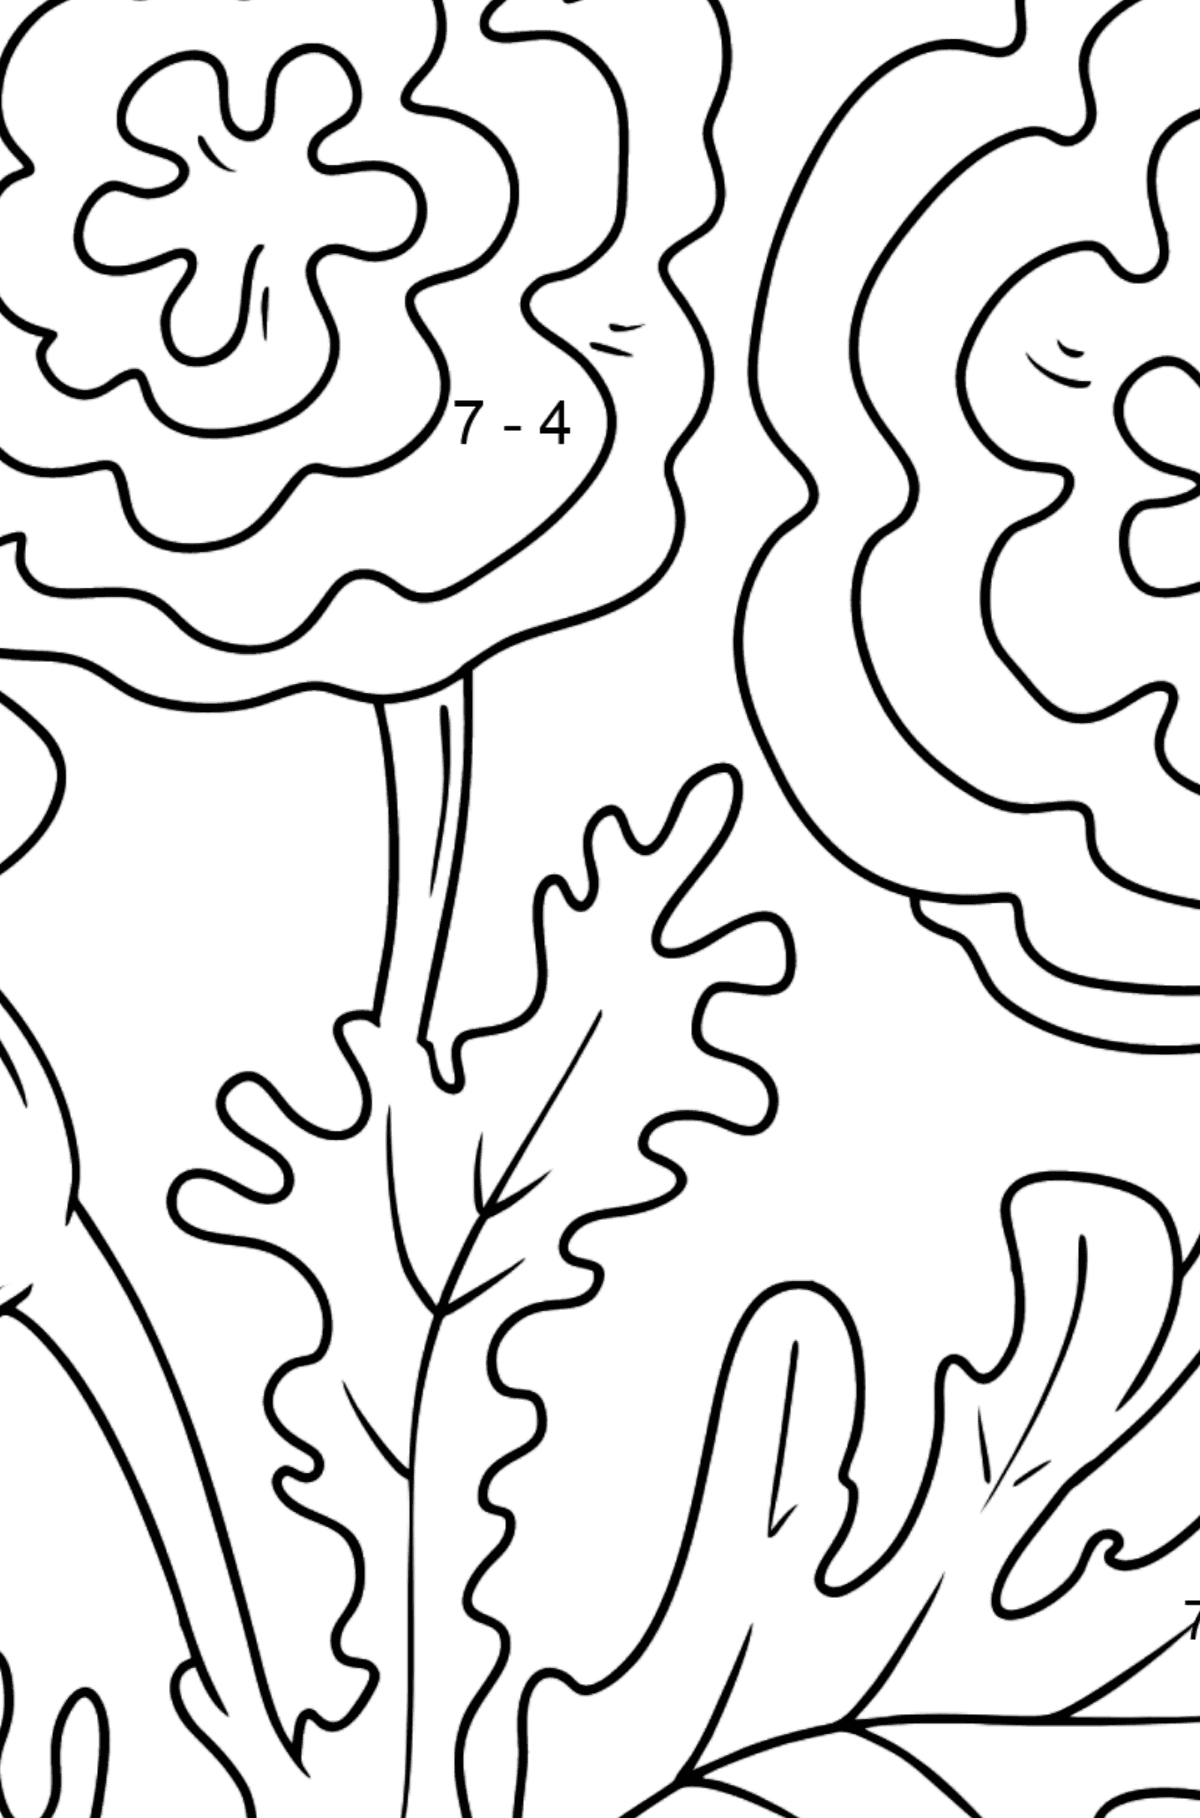 Coloring Page - Autumn flowers - Math Coloring - Subtraction for Kids